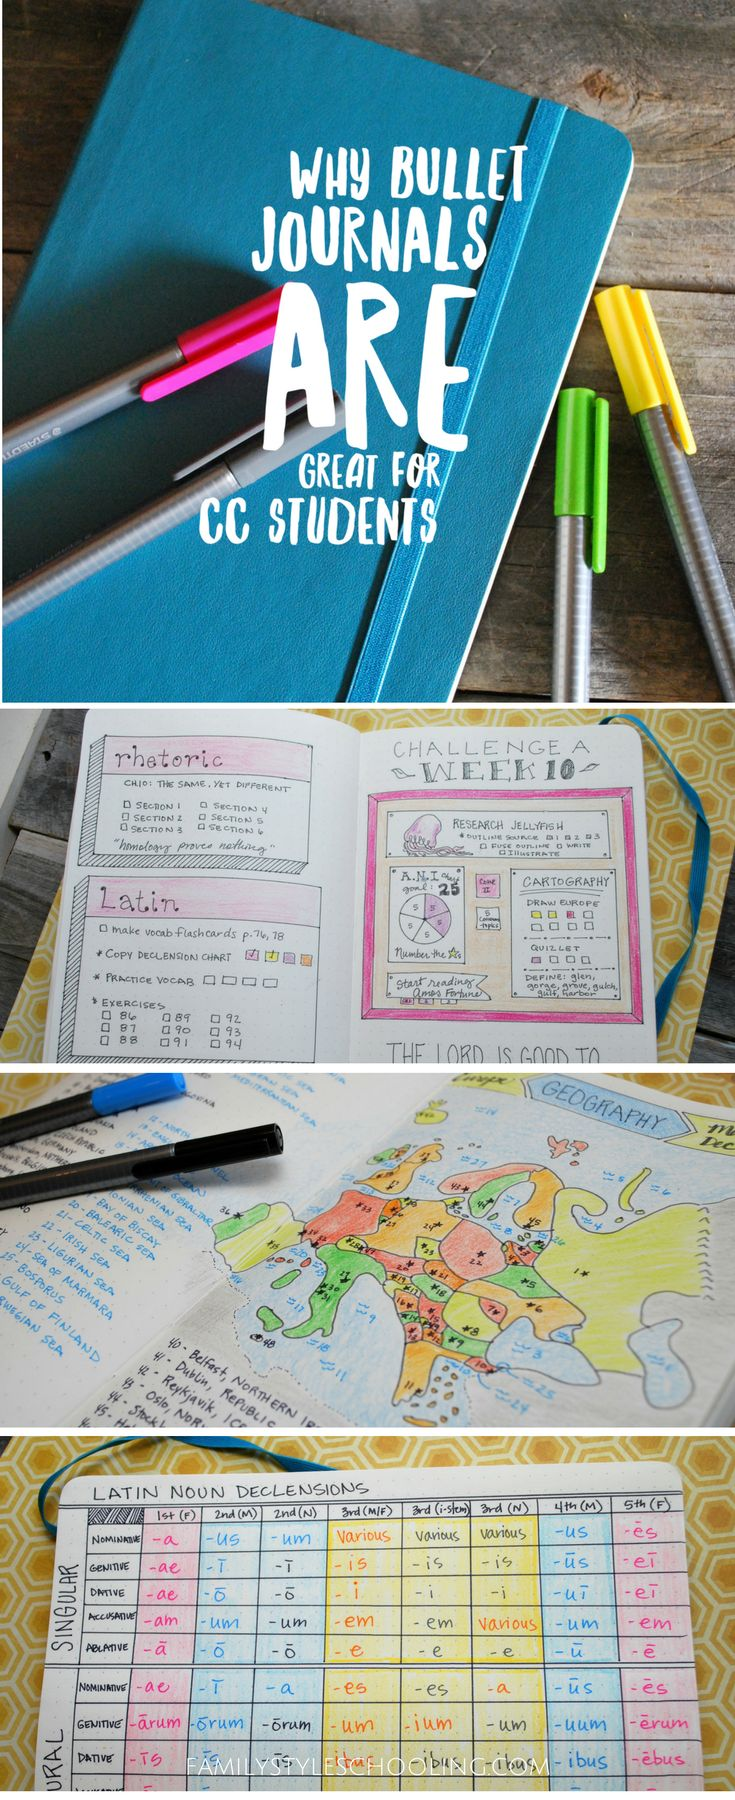 Why Bullet Journals Are Great for CC Students via @famstyleschool6